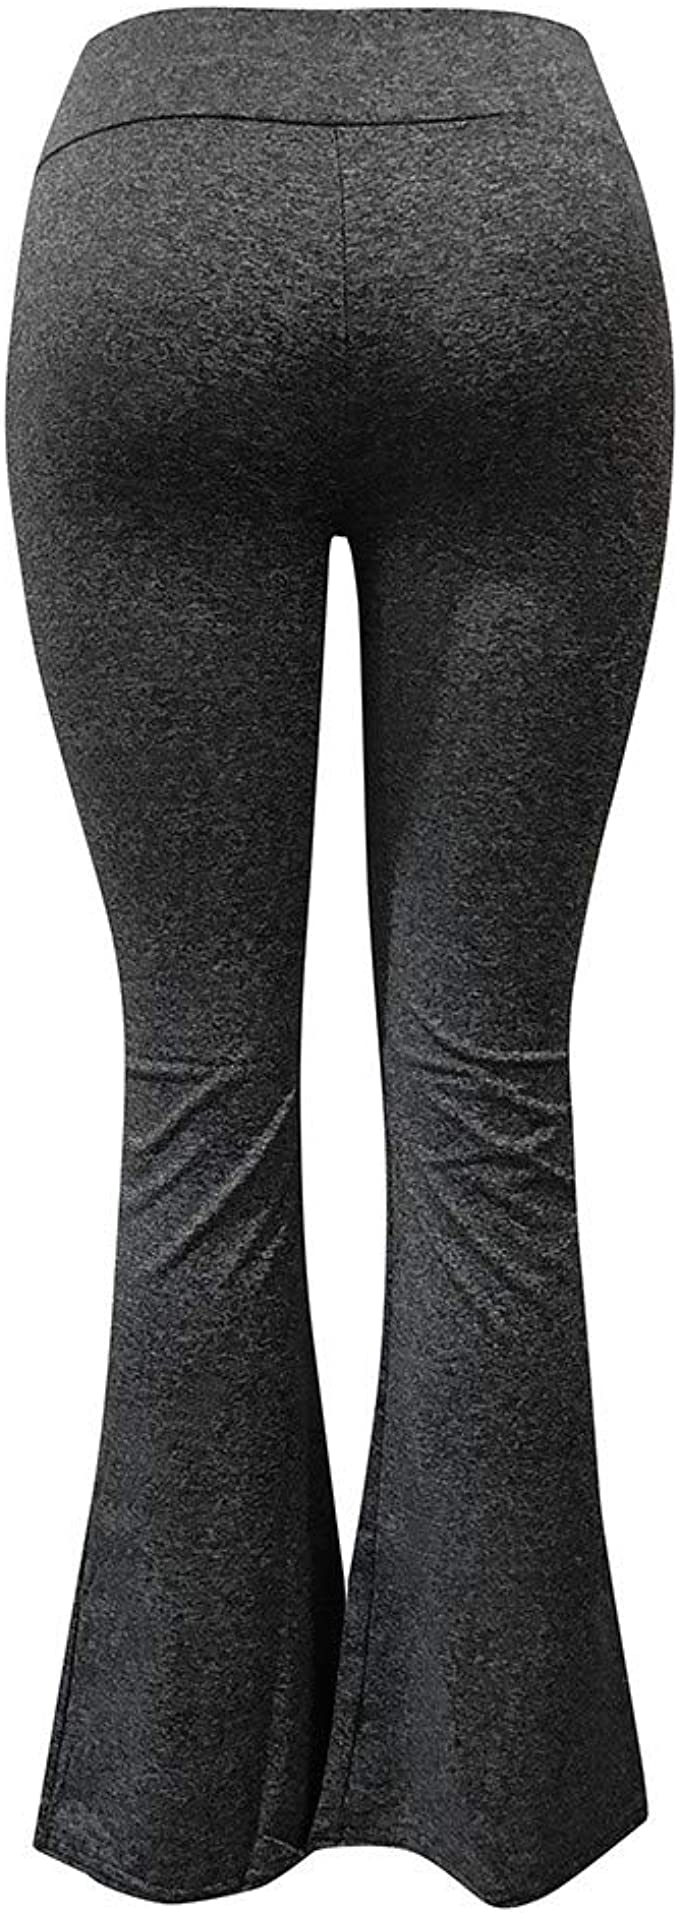 ZZpioneer Womens Casual Print Leggings Sports Workout Pants Lounge Yoga Athletic Pants Trouser